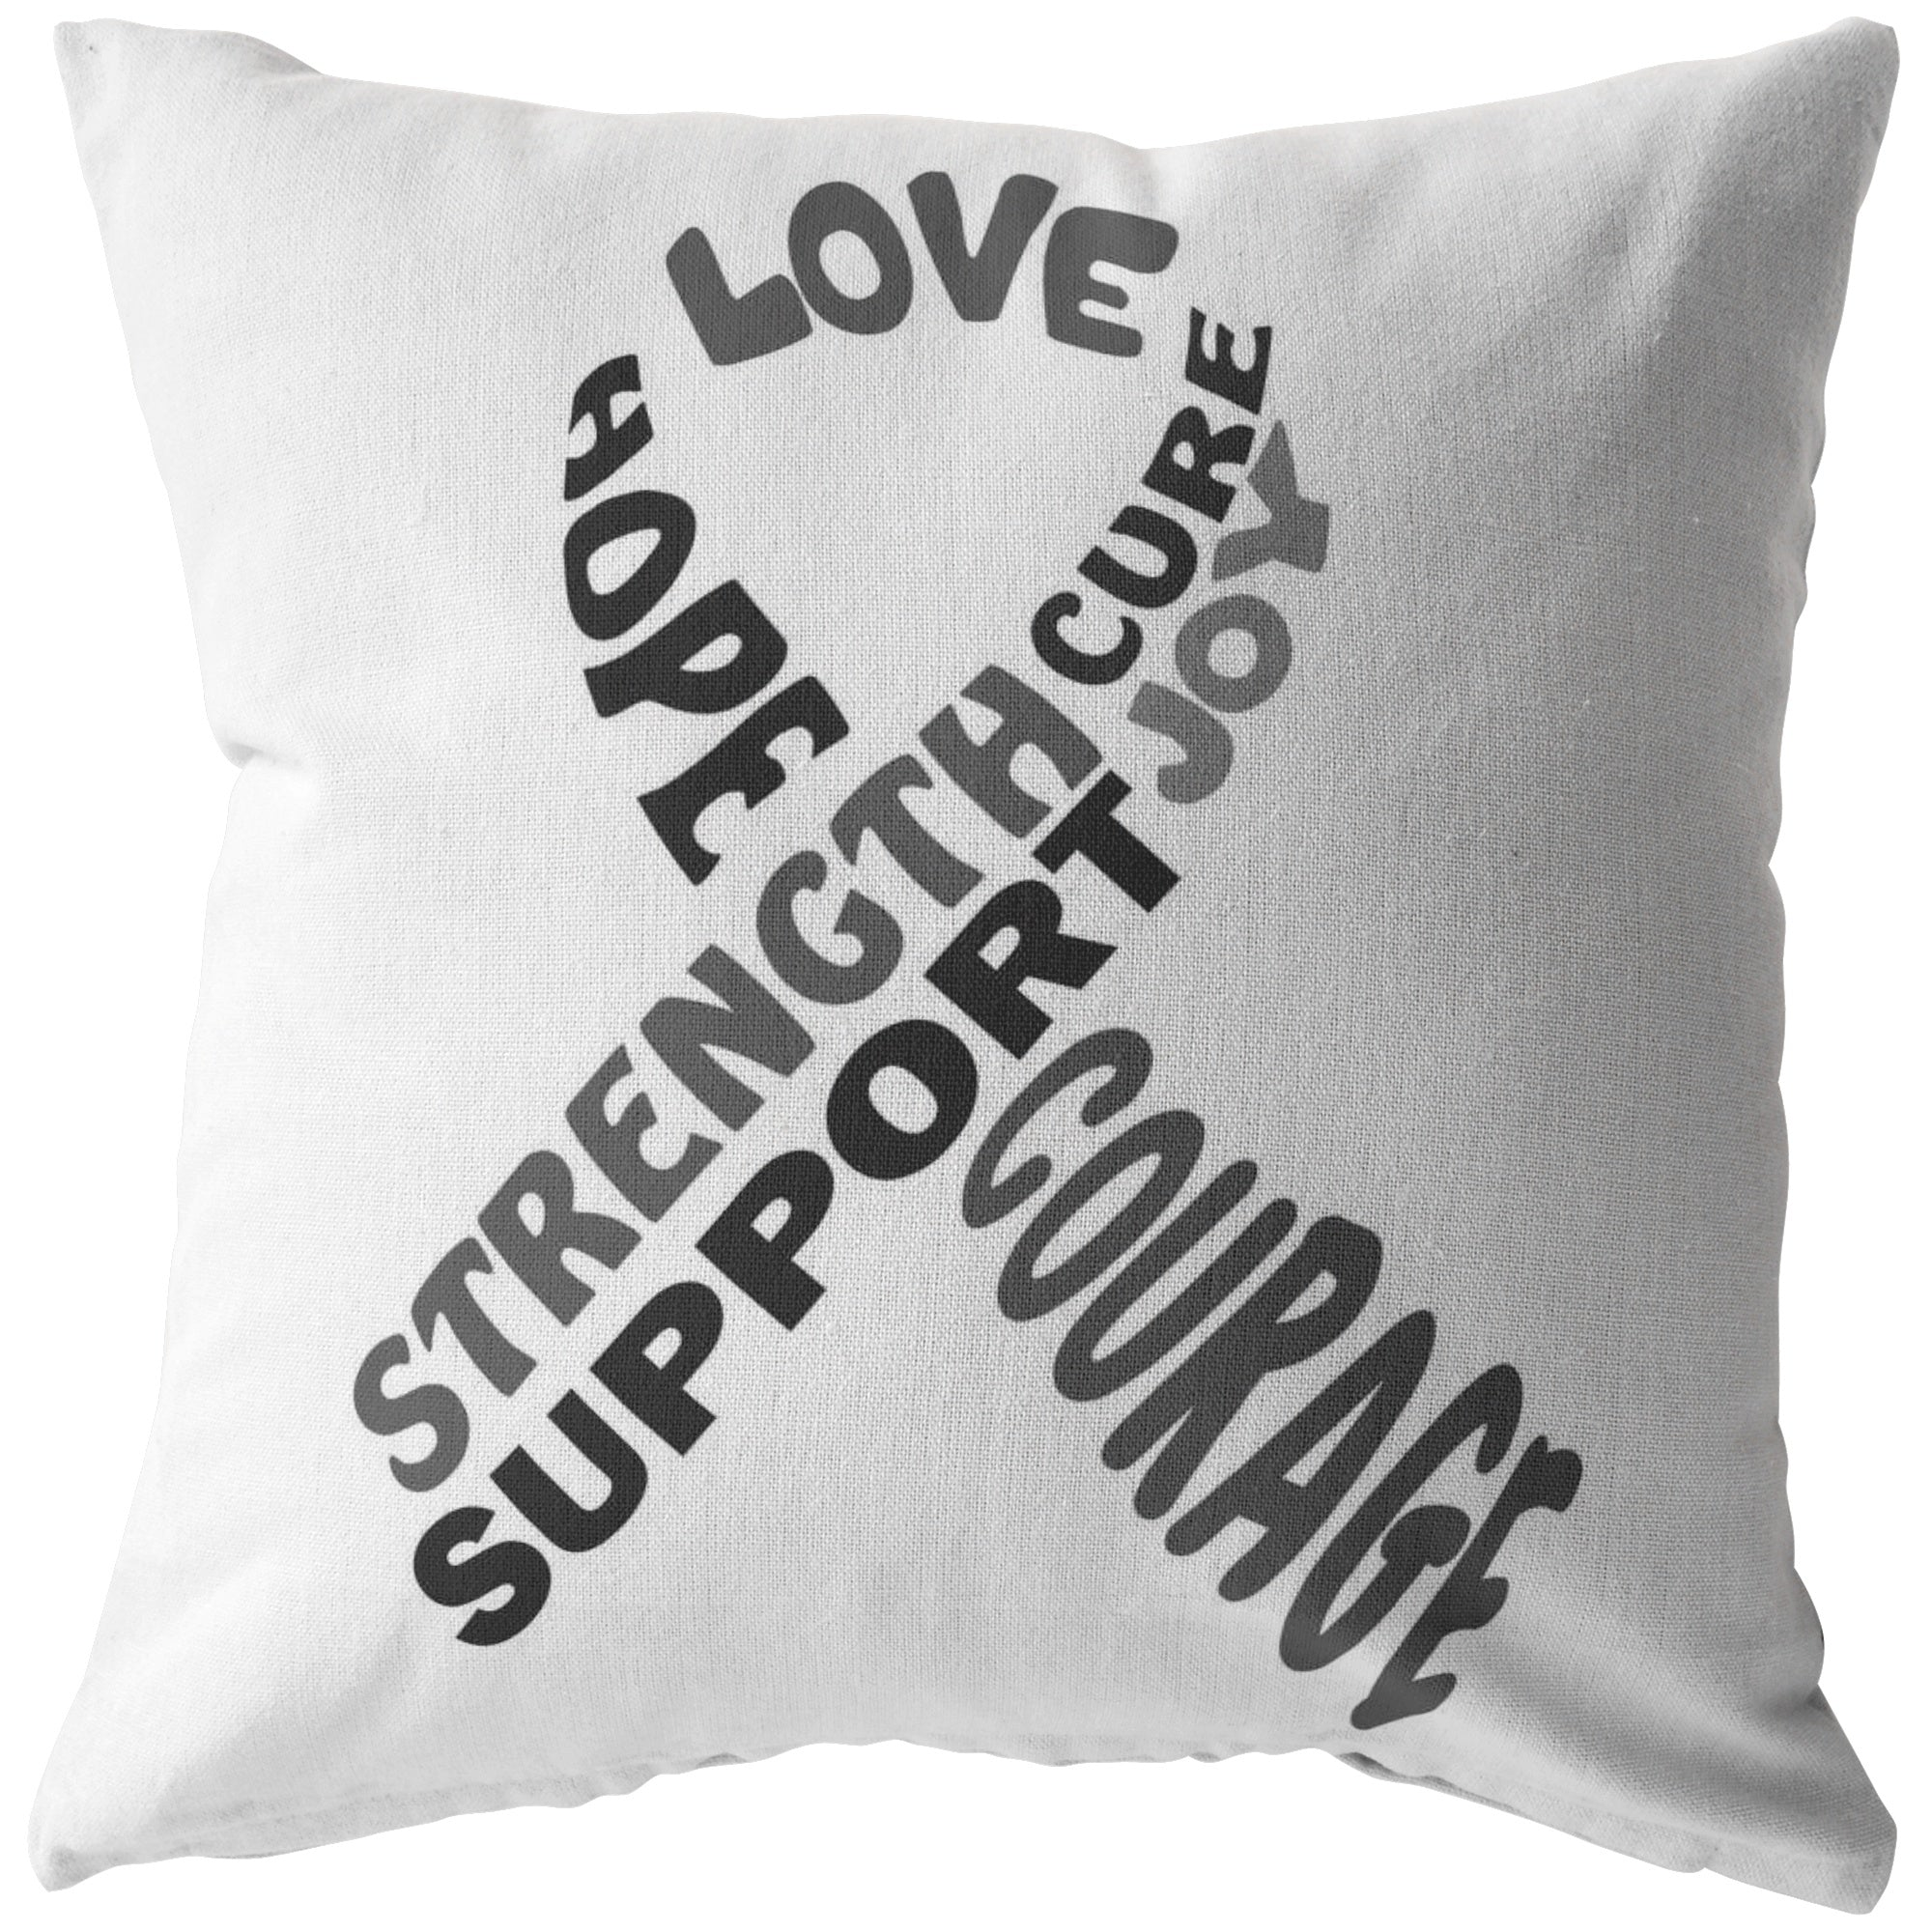 Grey Awareness Ribbon With Words Pillow - The Unchargeables